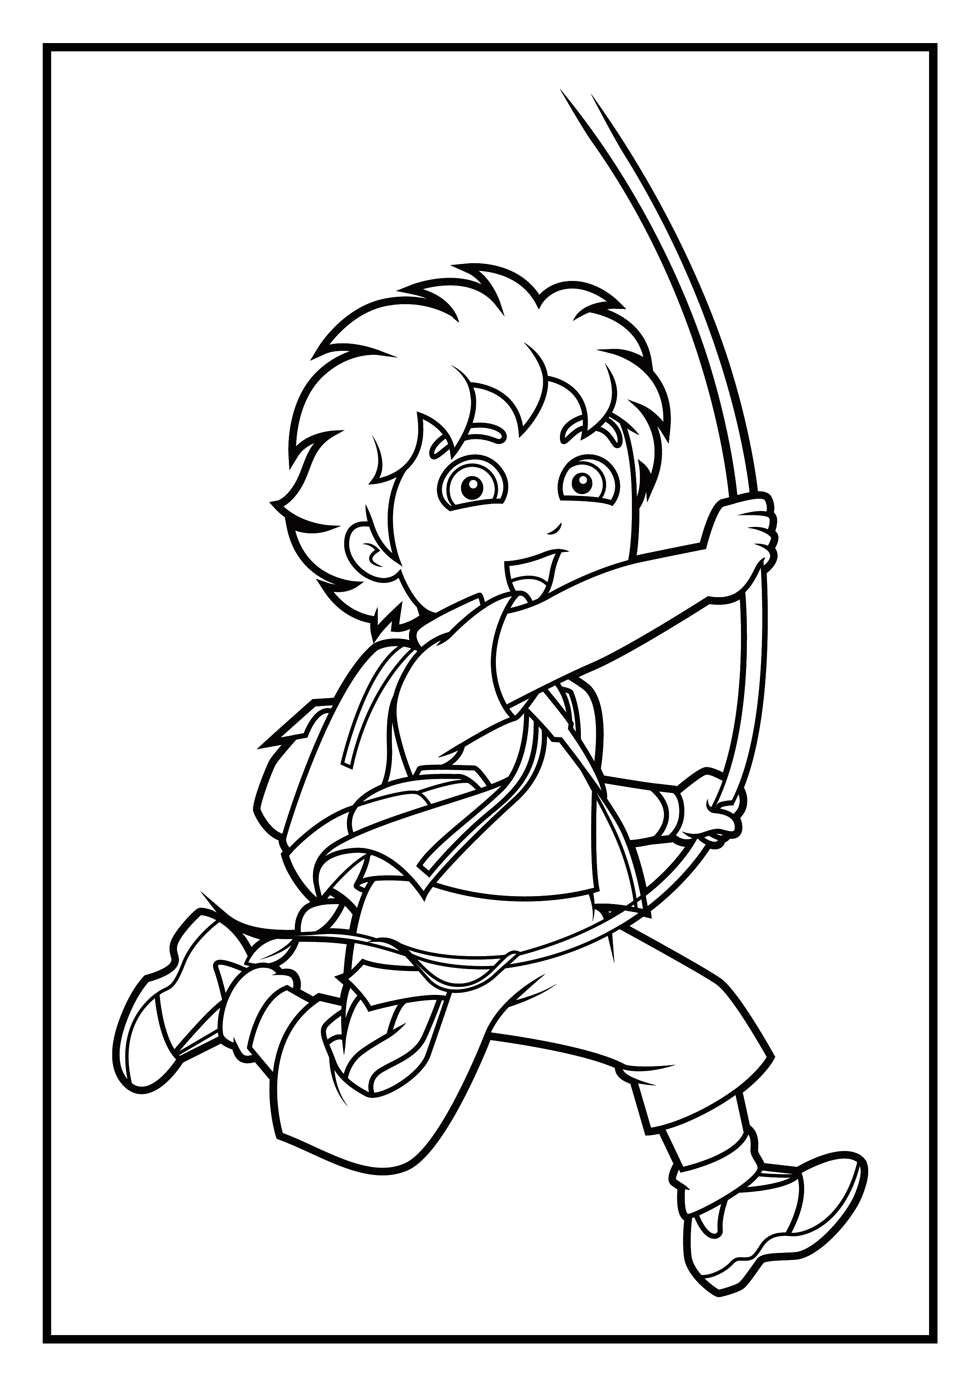 980x1386 Diego Coloring Pages